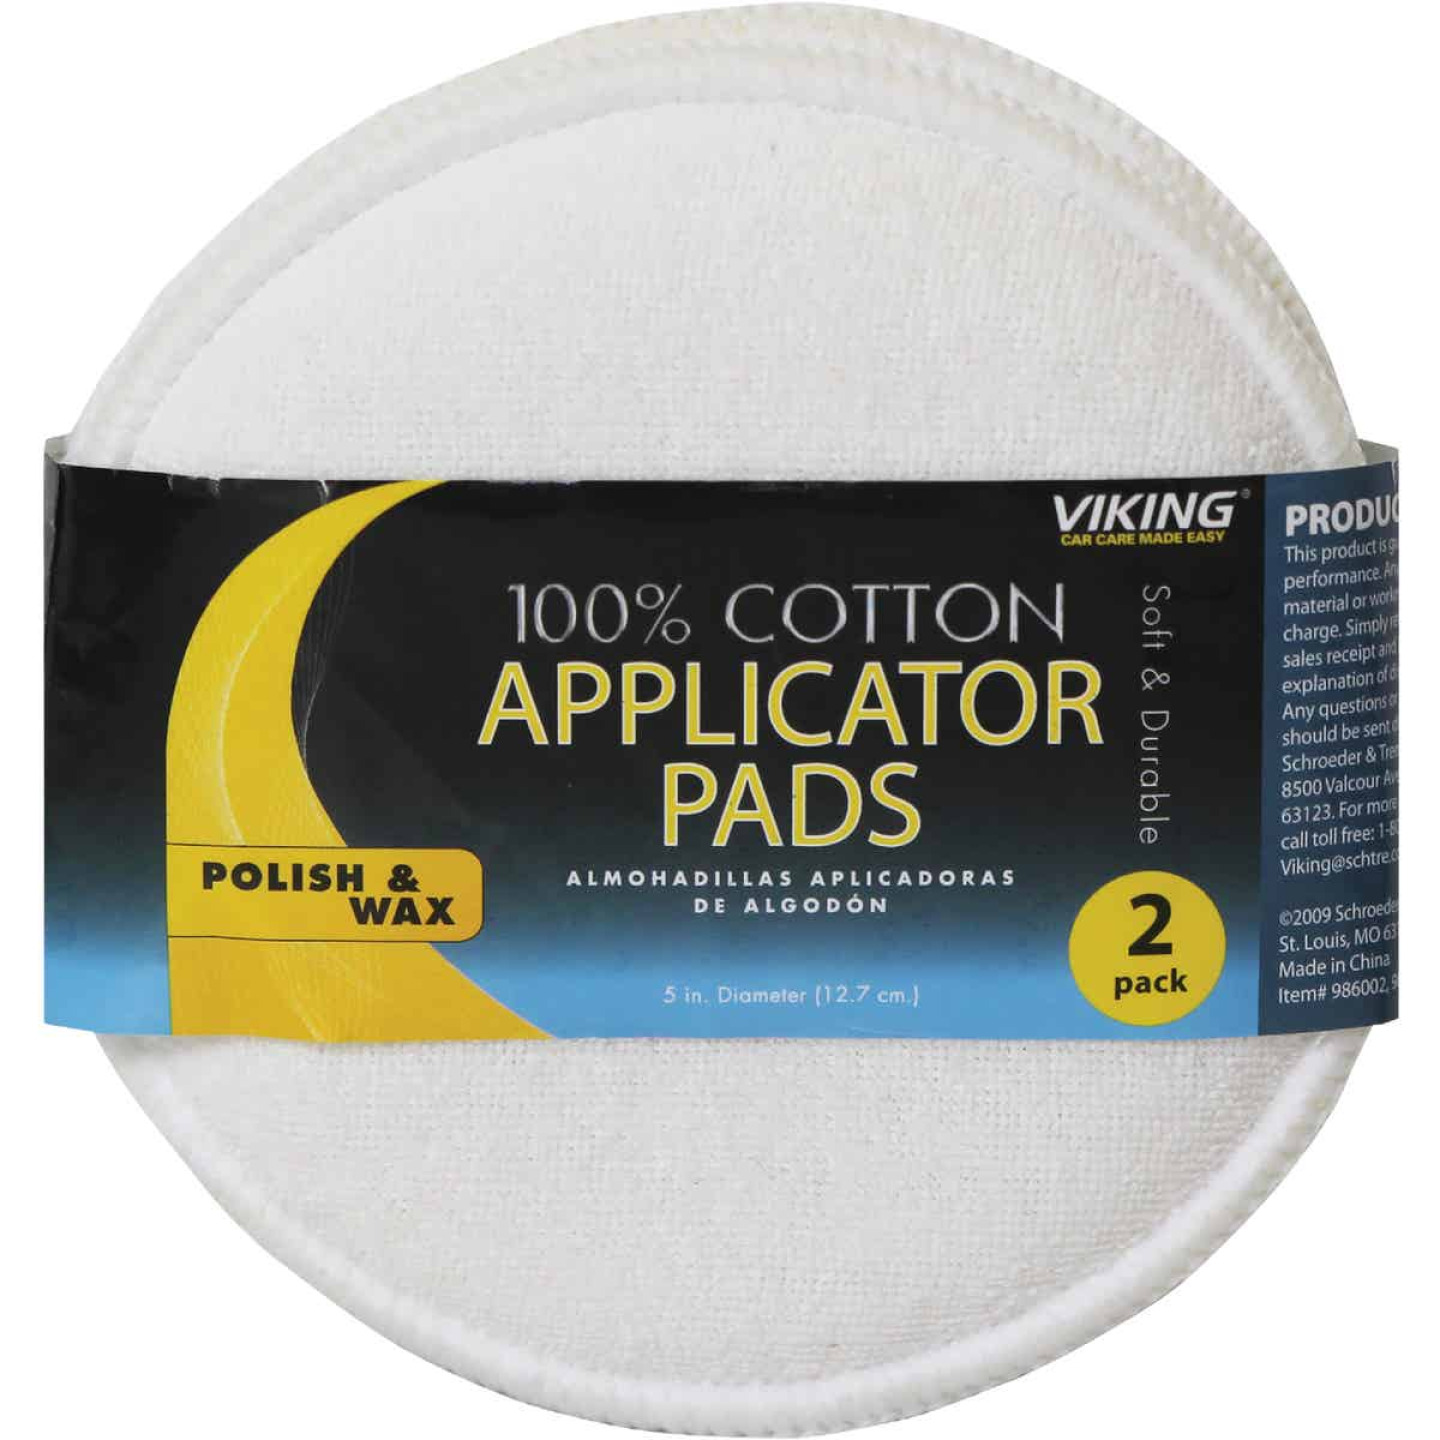 Viking 5 In. Dia. Cotton Terry Wax Applicator Pad (2-Pack) Image 1